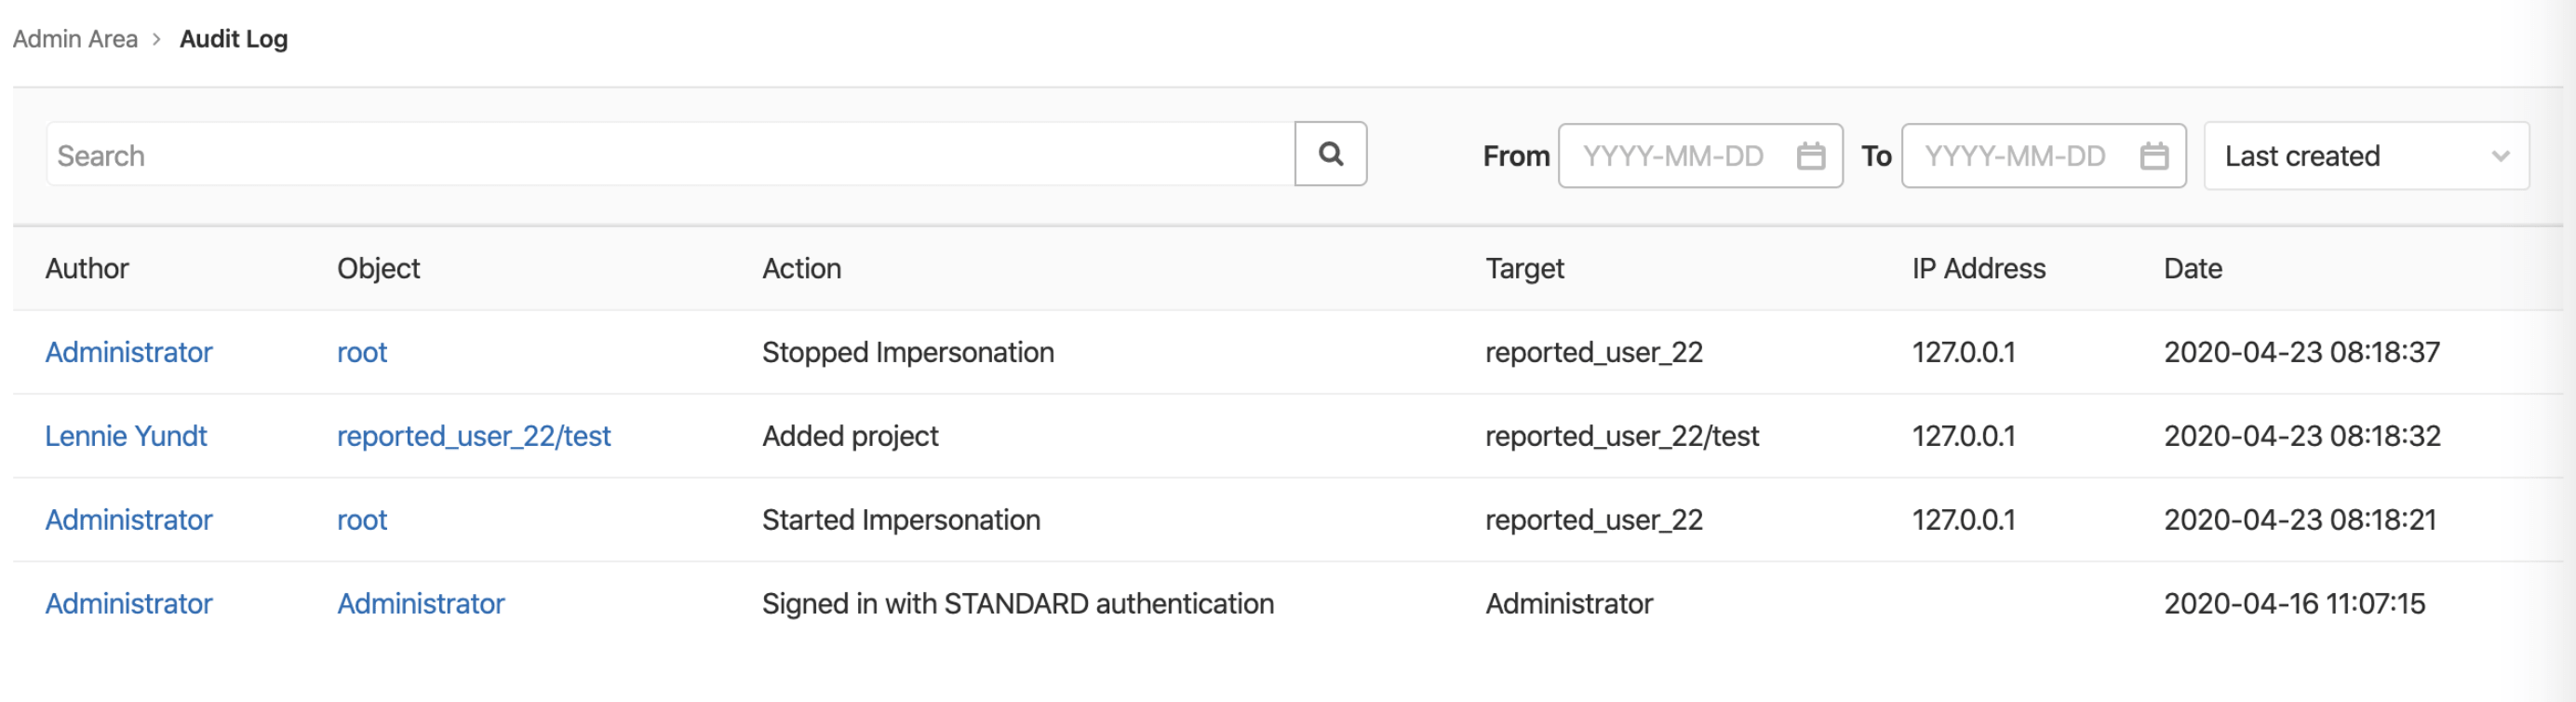 Filtered search for instance-level audit events